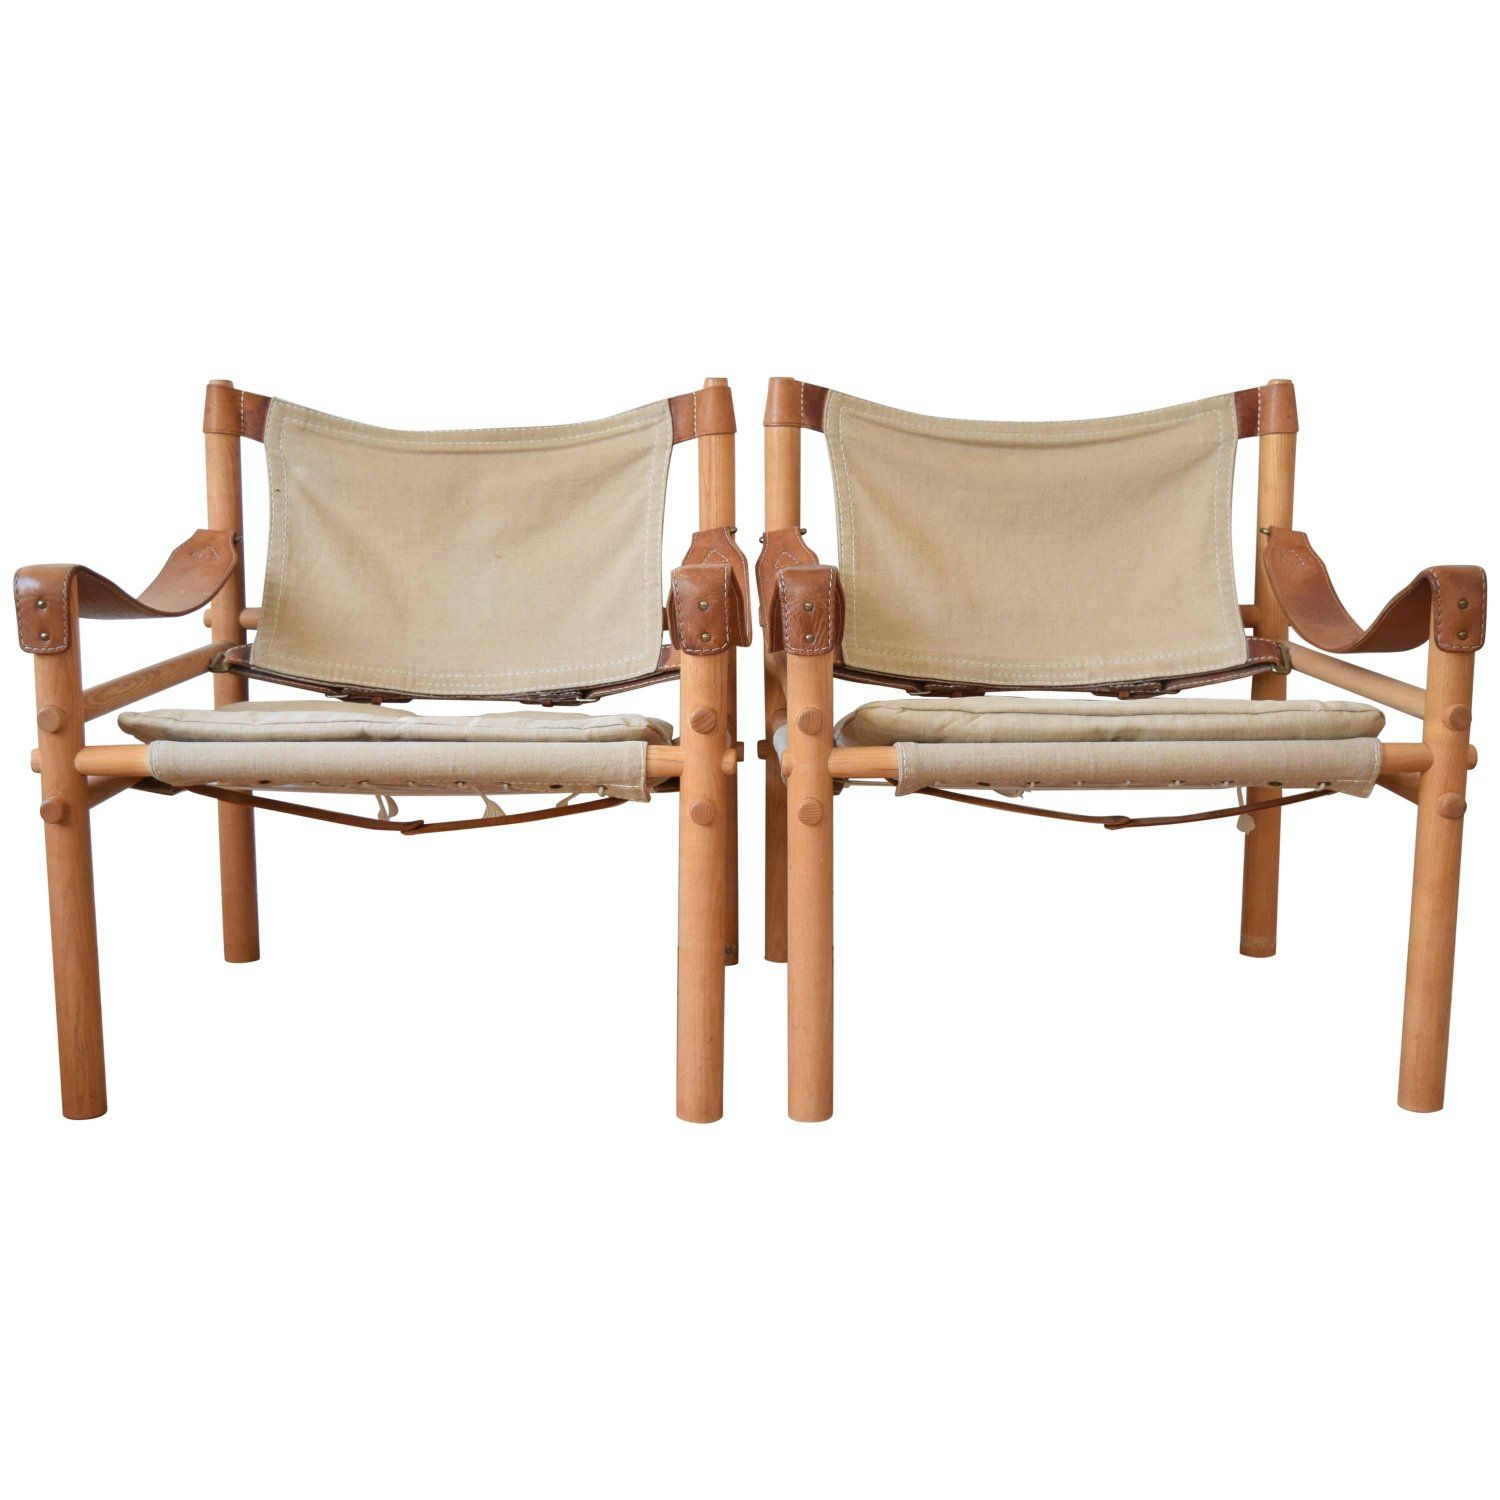 Swedish Mid Century Furniture Swedish Mid Century Sirocco Safari Chairs By Arne Norell From